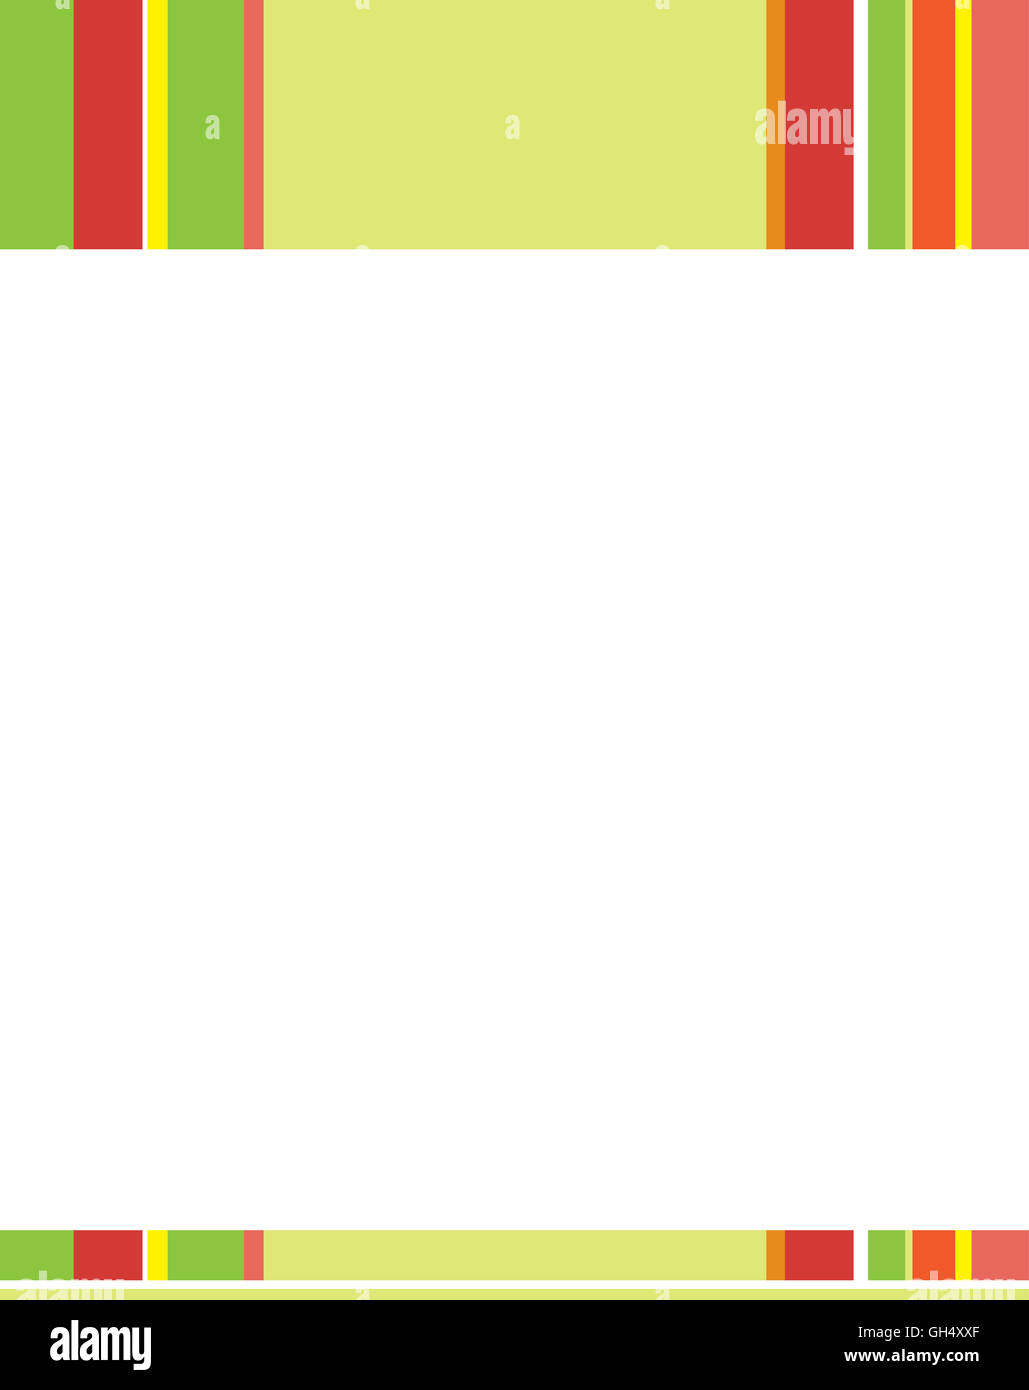 Green Yellow Red Striped Letterhead Template - Stock Image